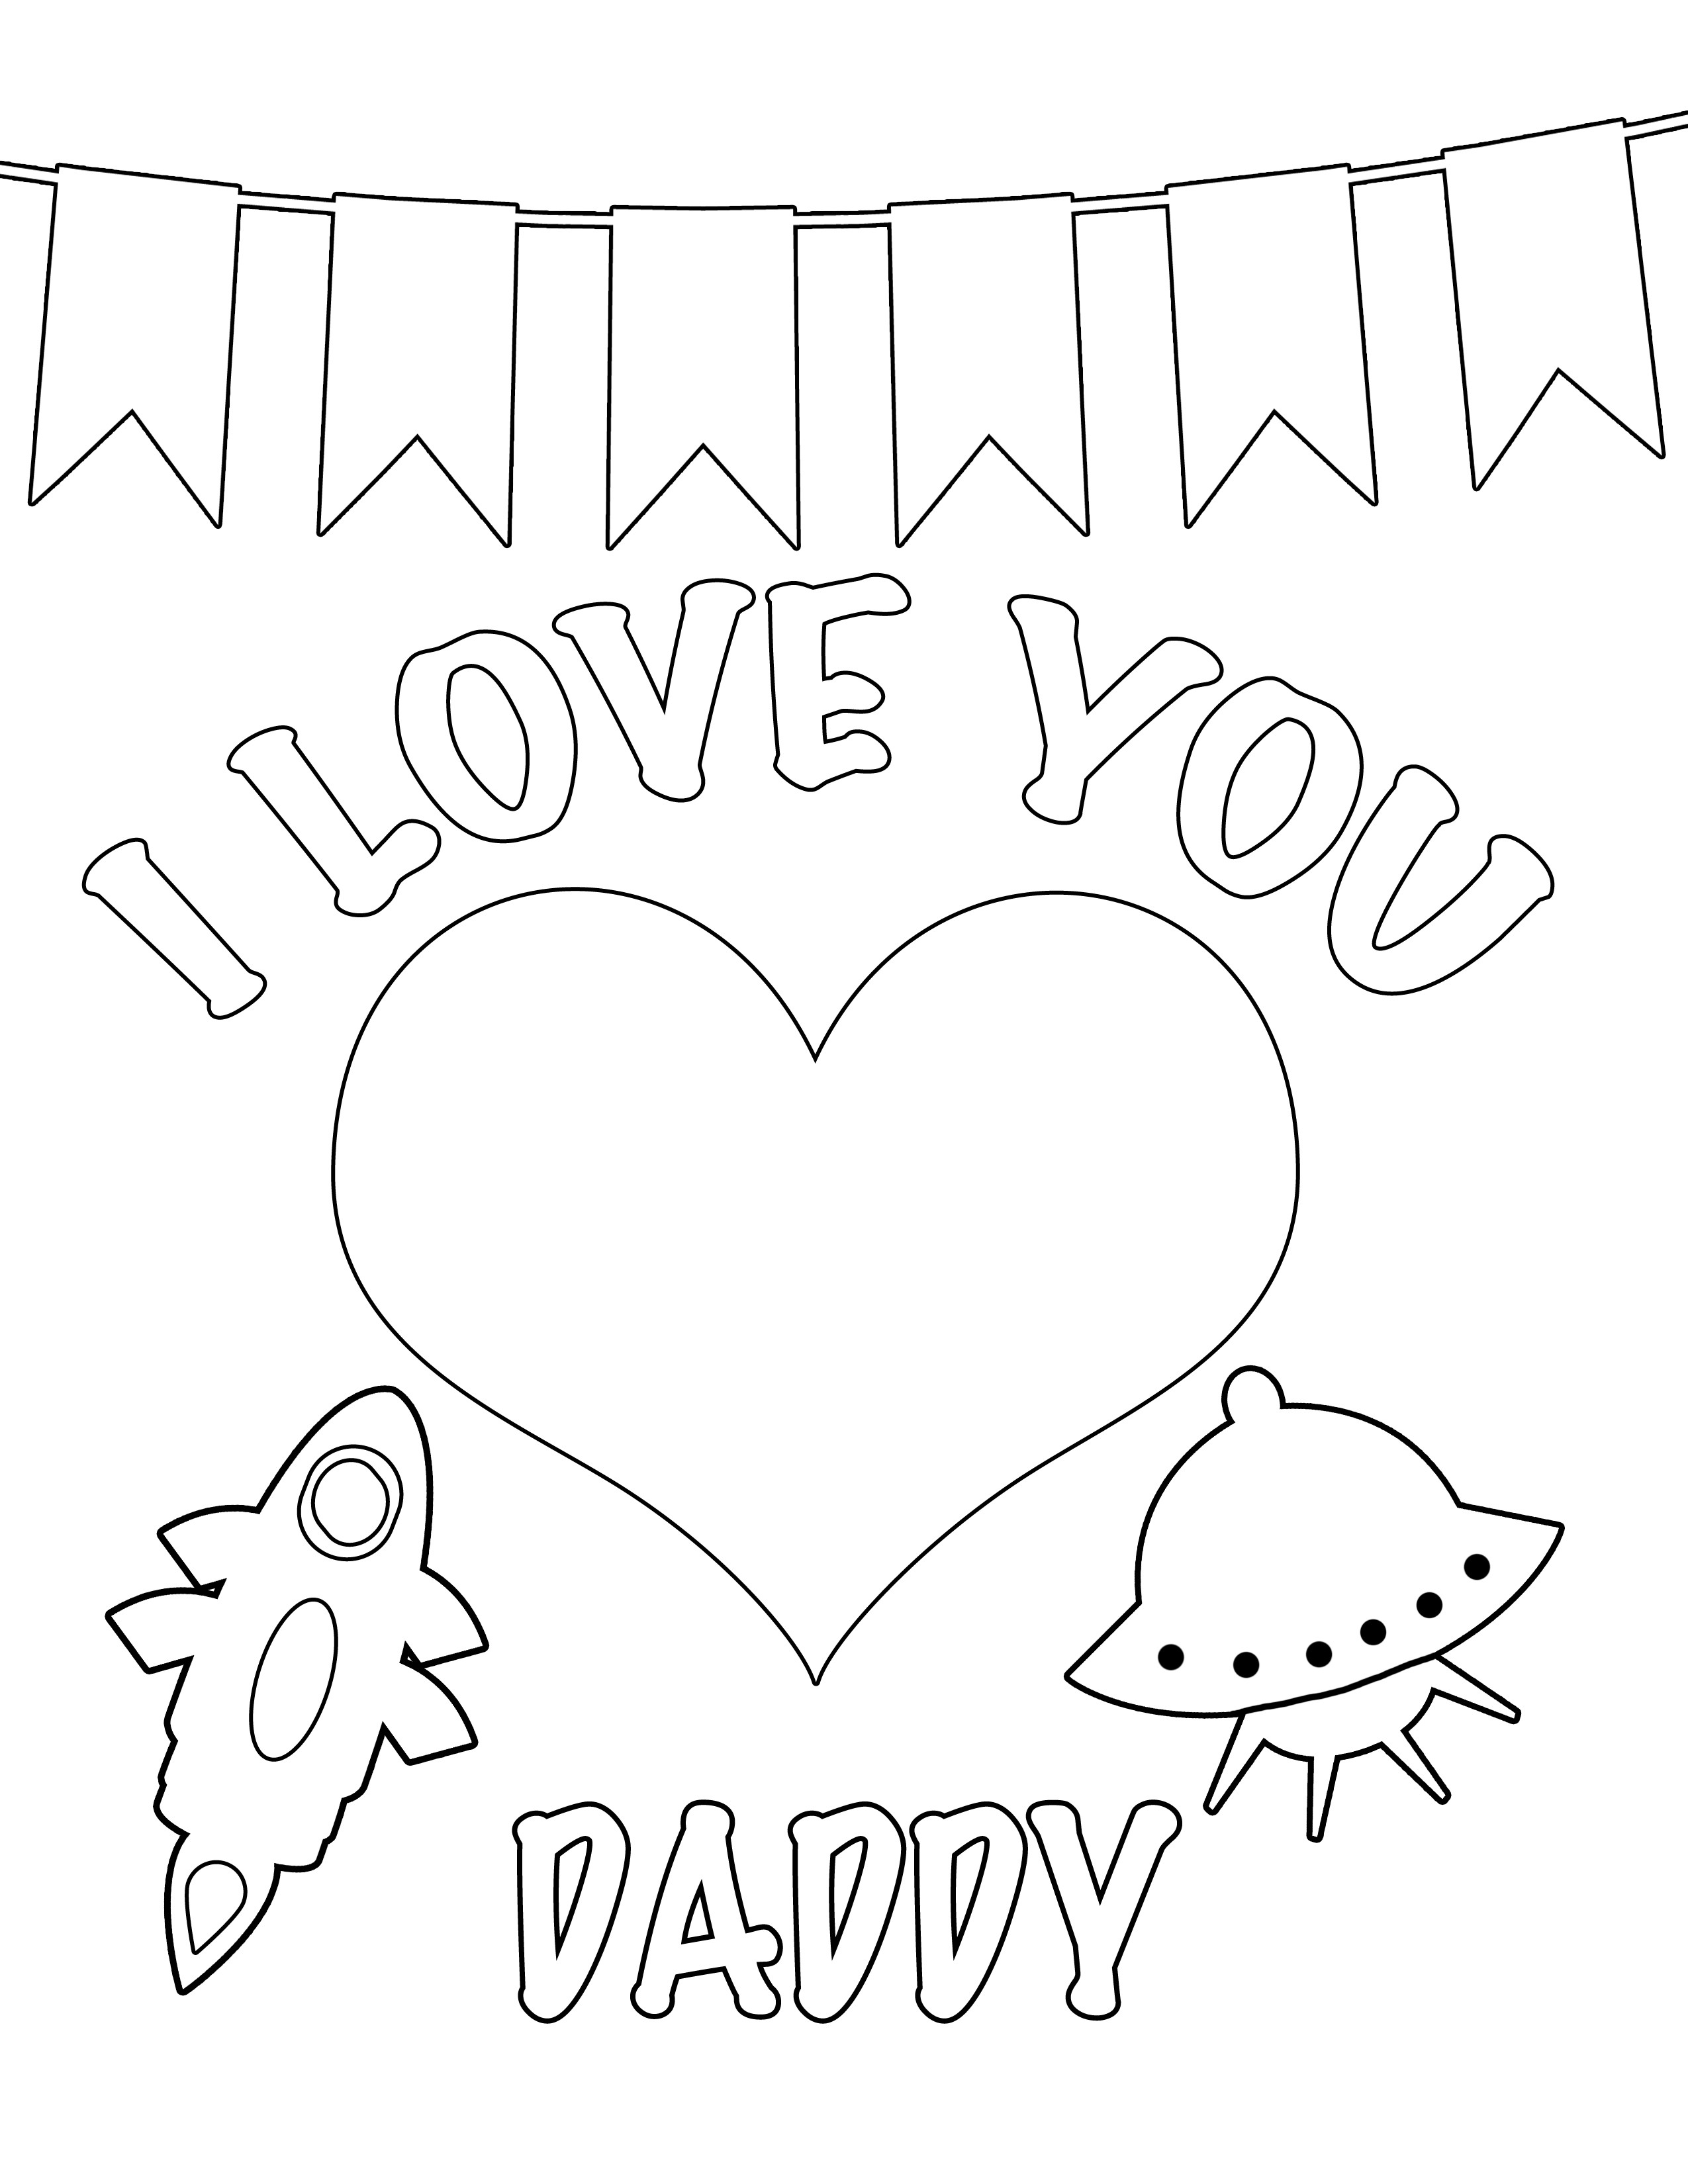 Merry Christmas Dad Coloring Pages With Mom And Page 2498479